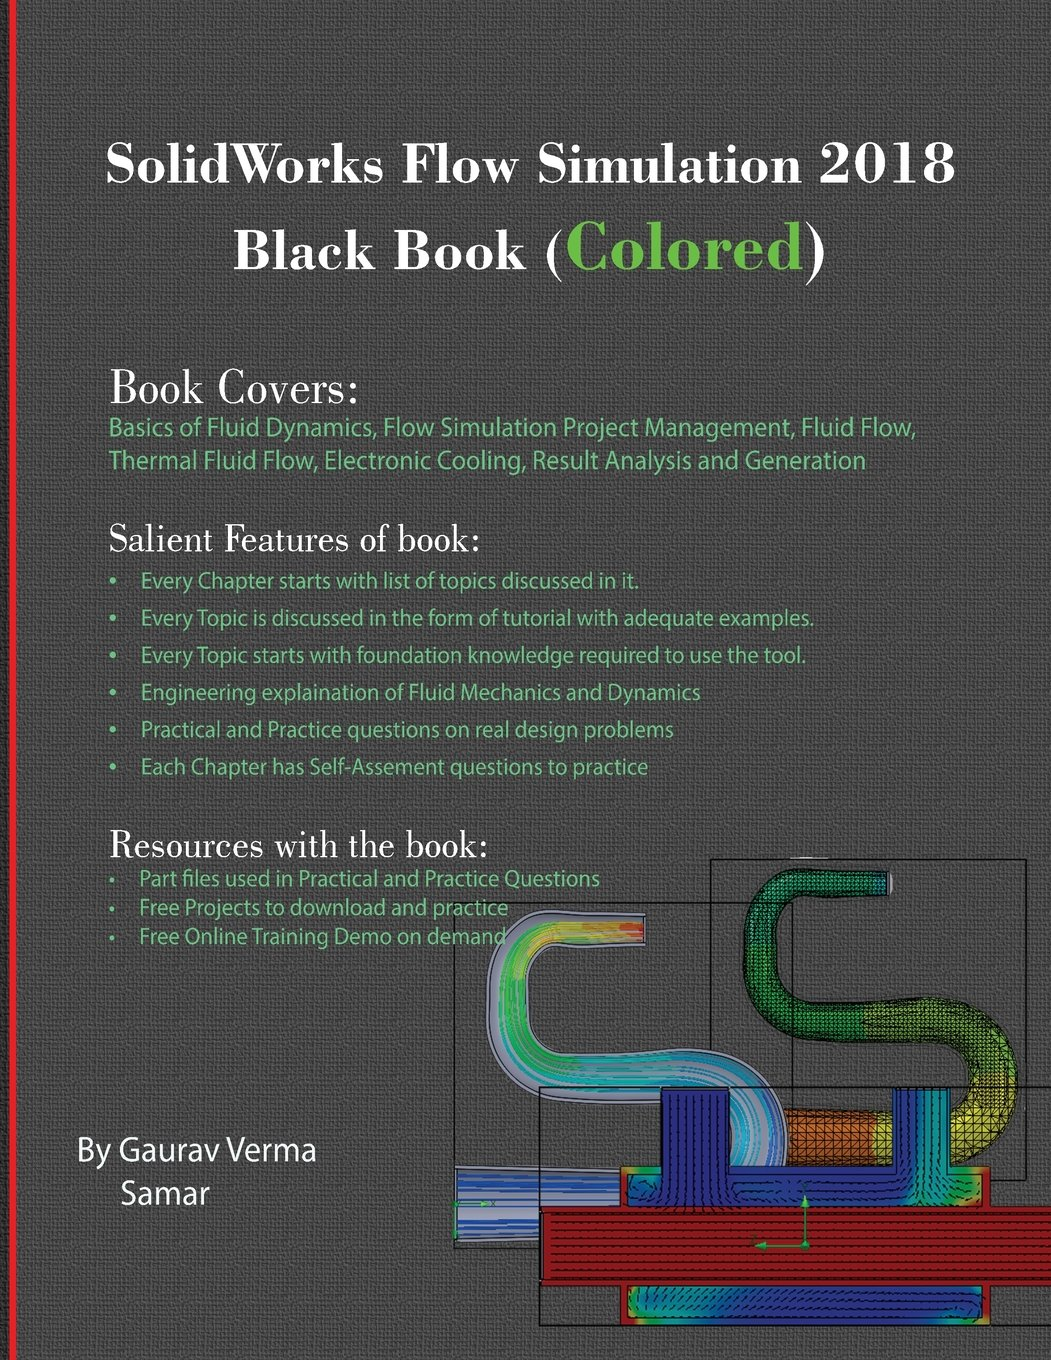 Book Cover Design Tutorial In Photo ~ Solidworks flow simulation black book colored gaurav verma